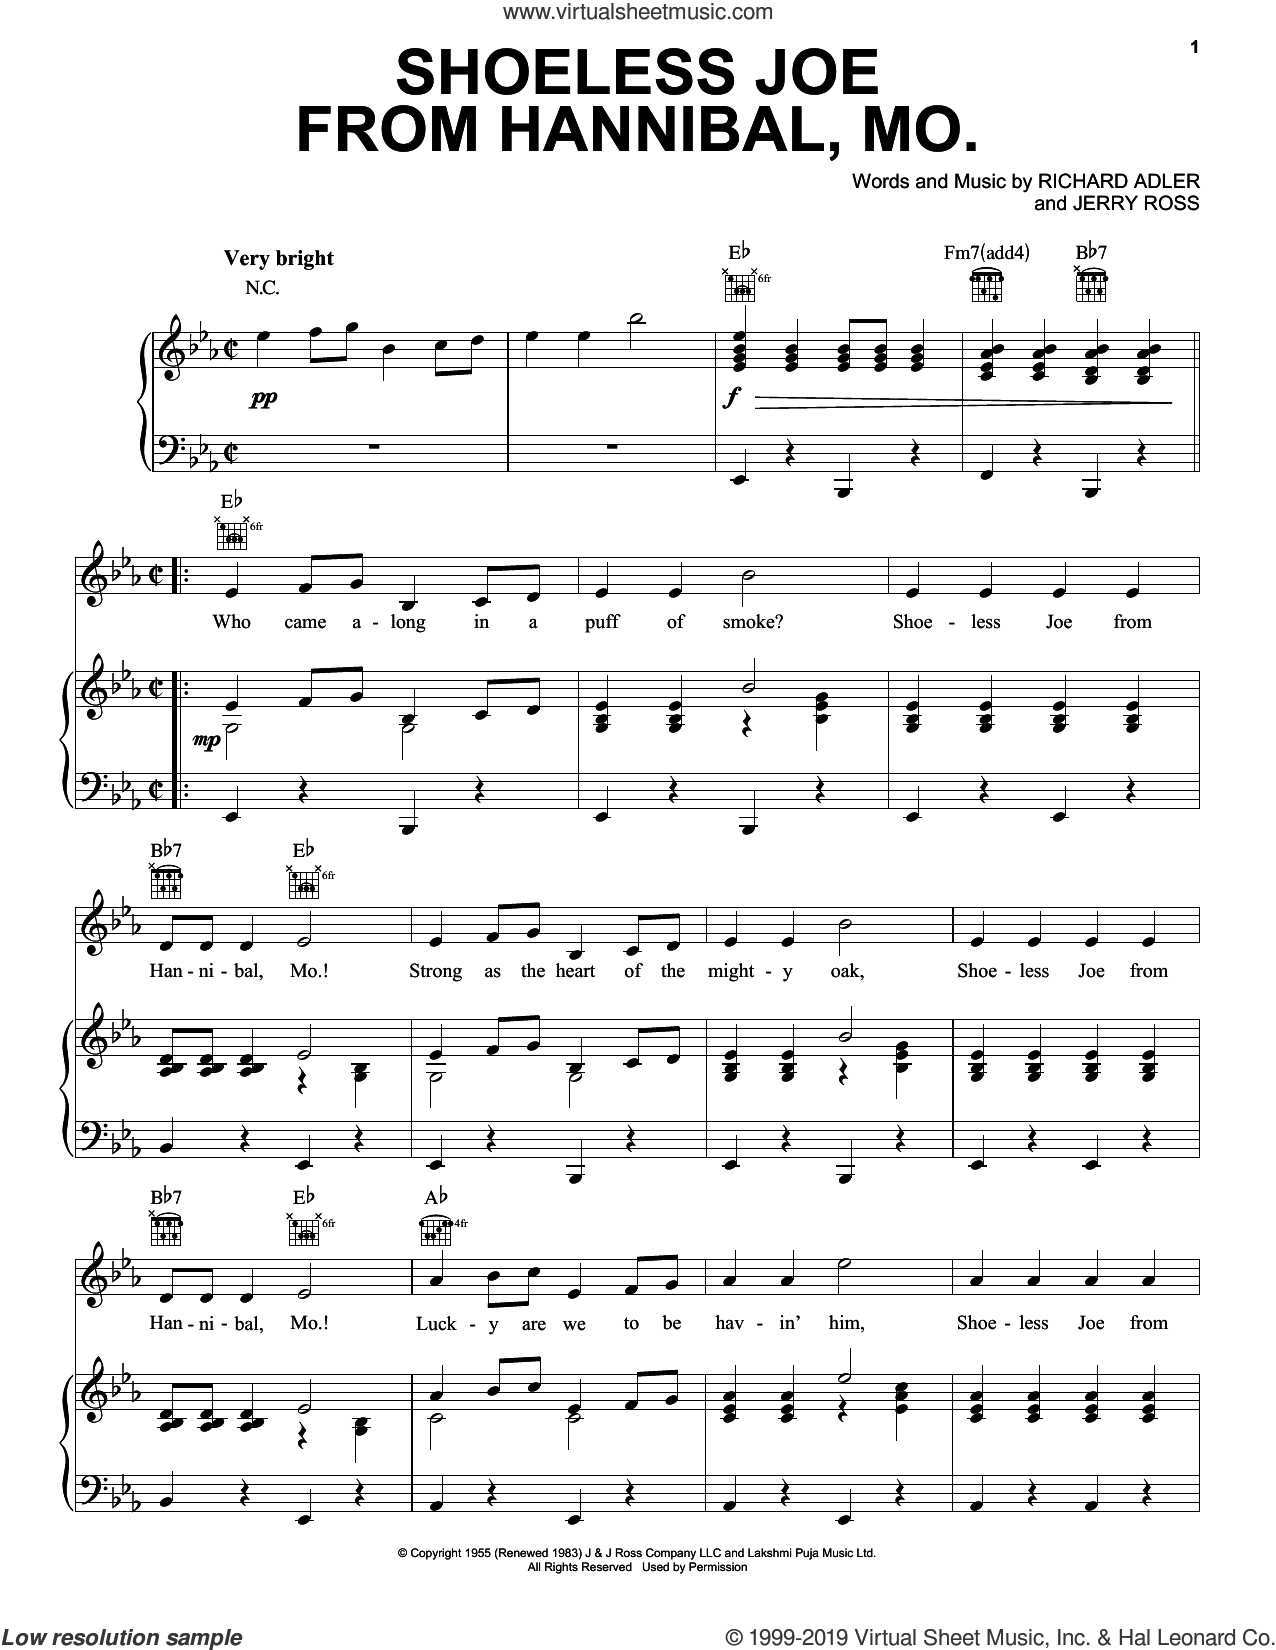 Shoeless Joe From Hannibal, Mo. sheet music for voice, piano or guitar by Adler & Ross, Jerry Ross and Richard Adler, intermediate skill level